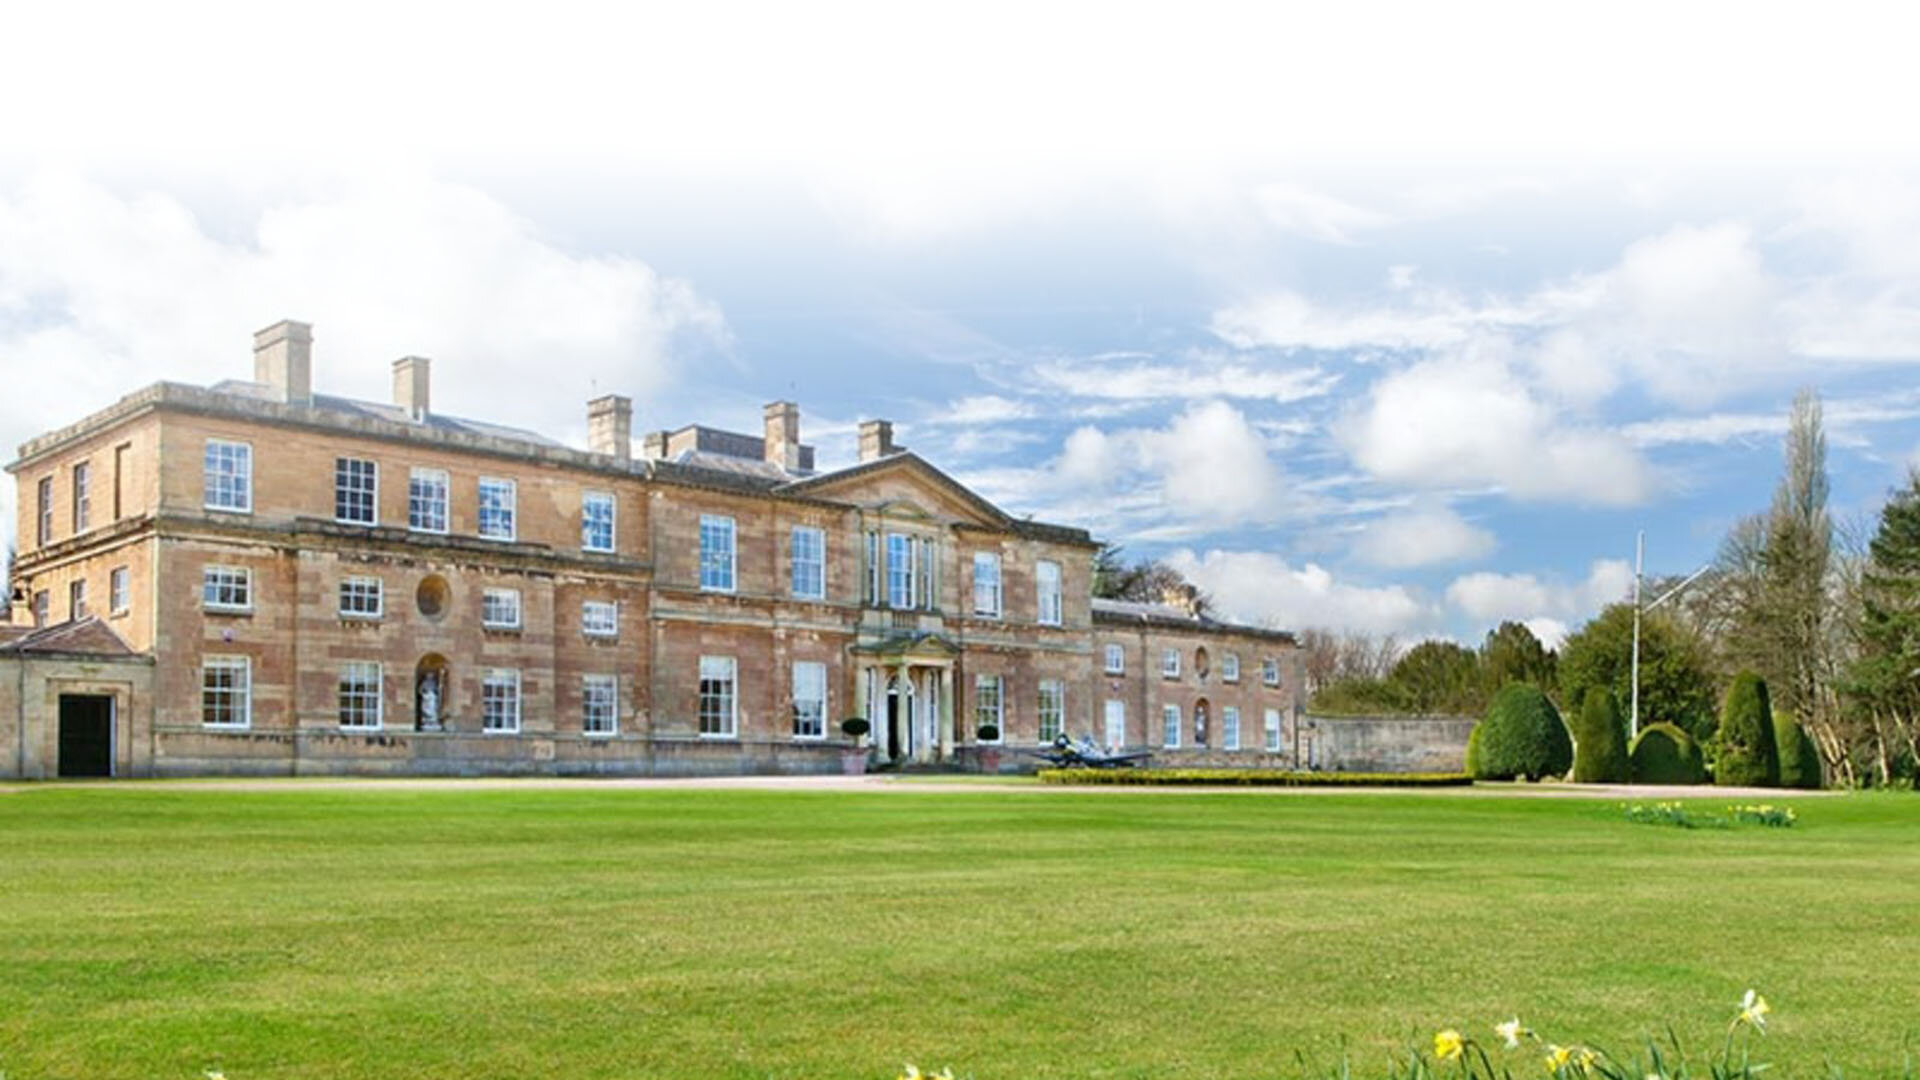 Bowcliffe Hall outside